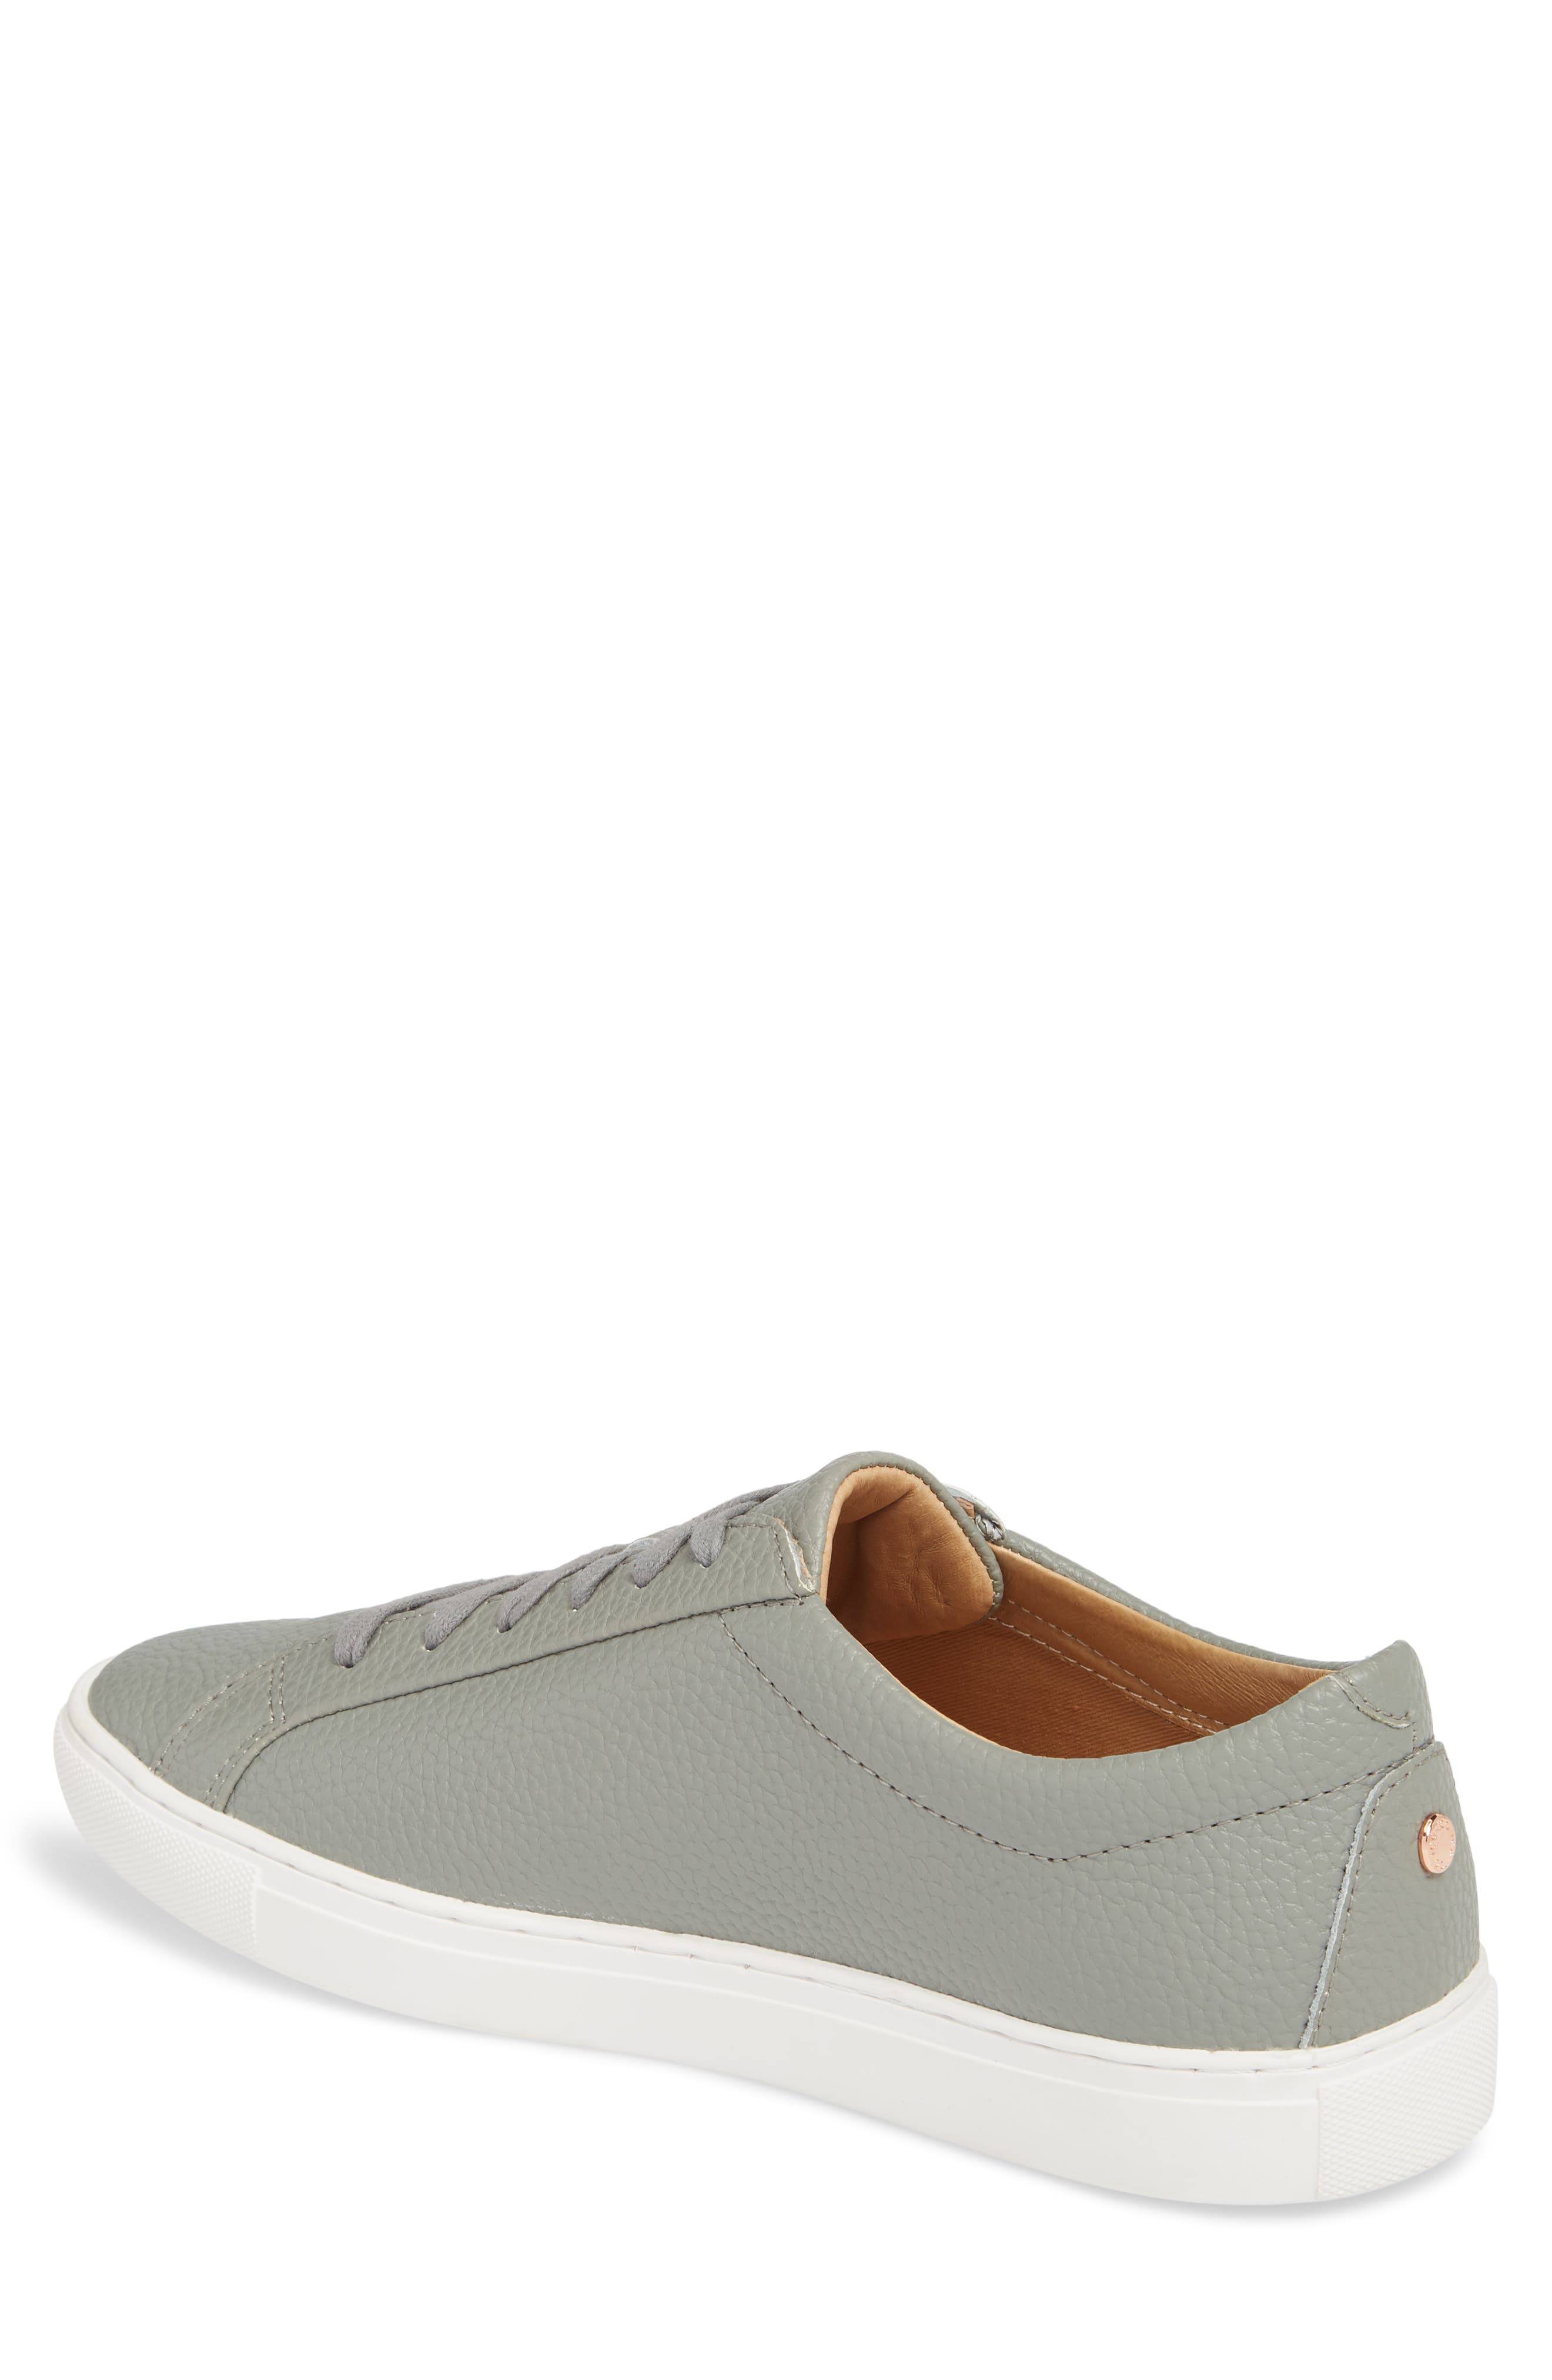 TCG, Kennedy Low Top Sneaker, Alternate thumbnail 2, color, RIVER ROCK LEATHER